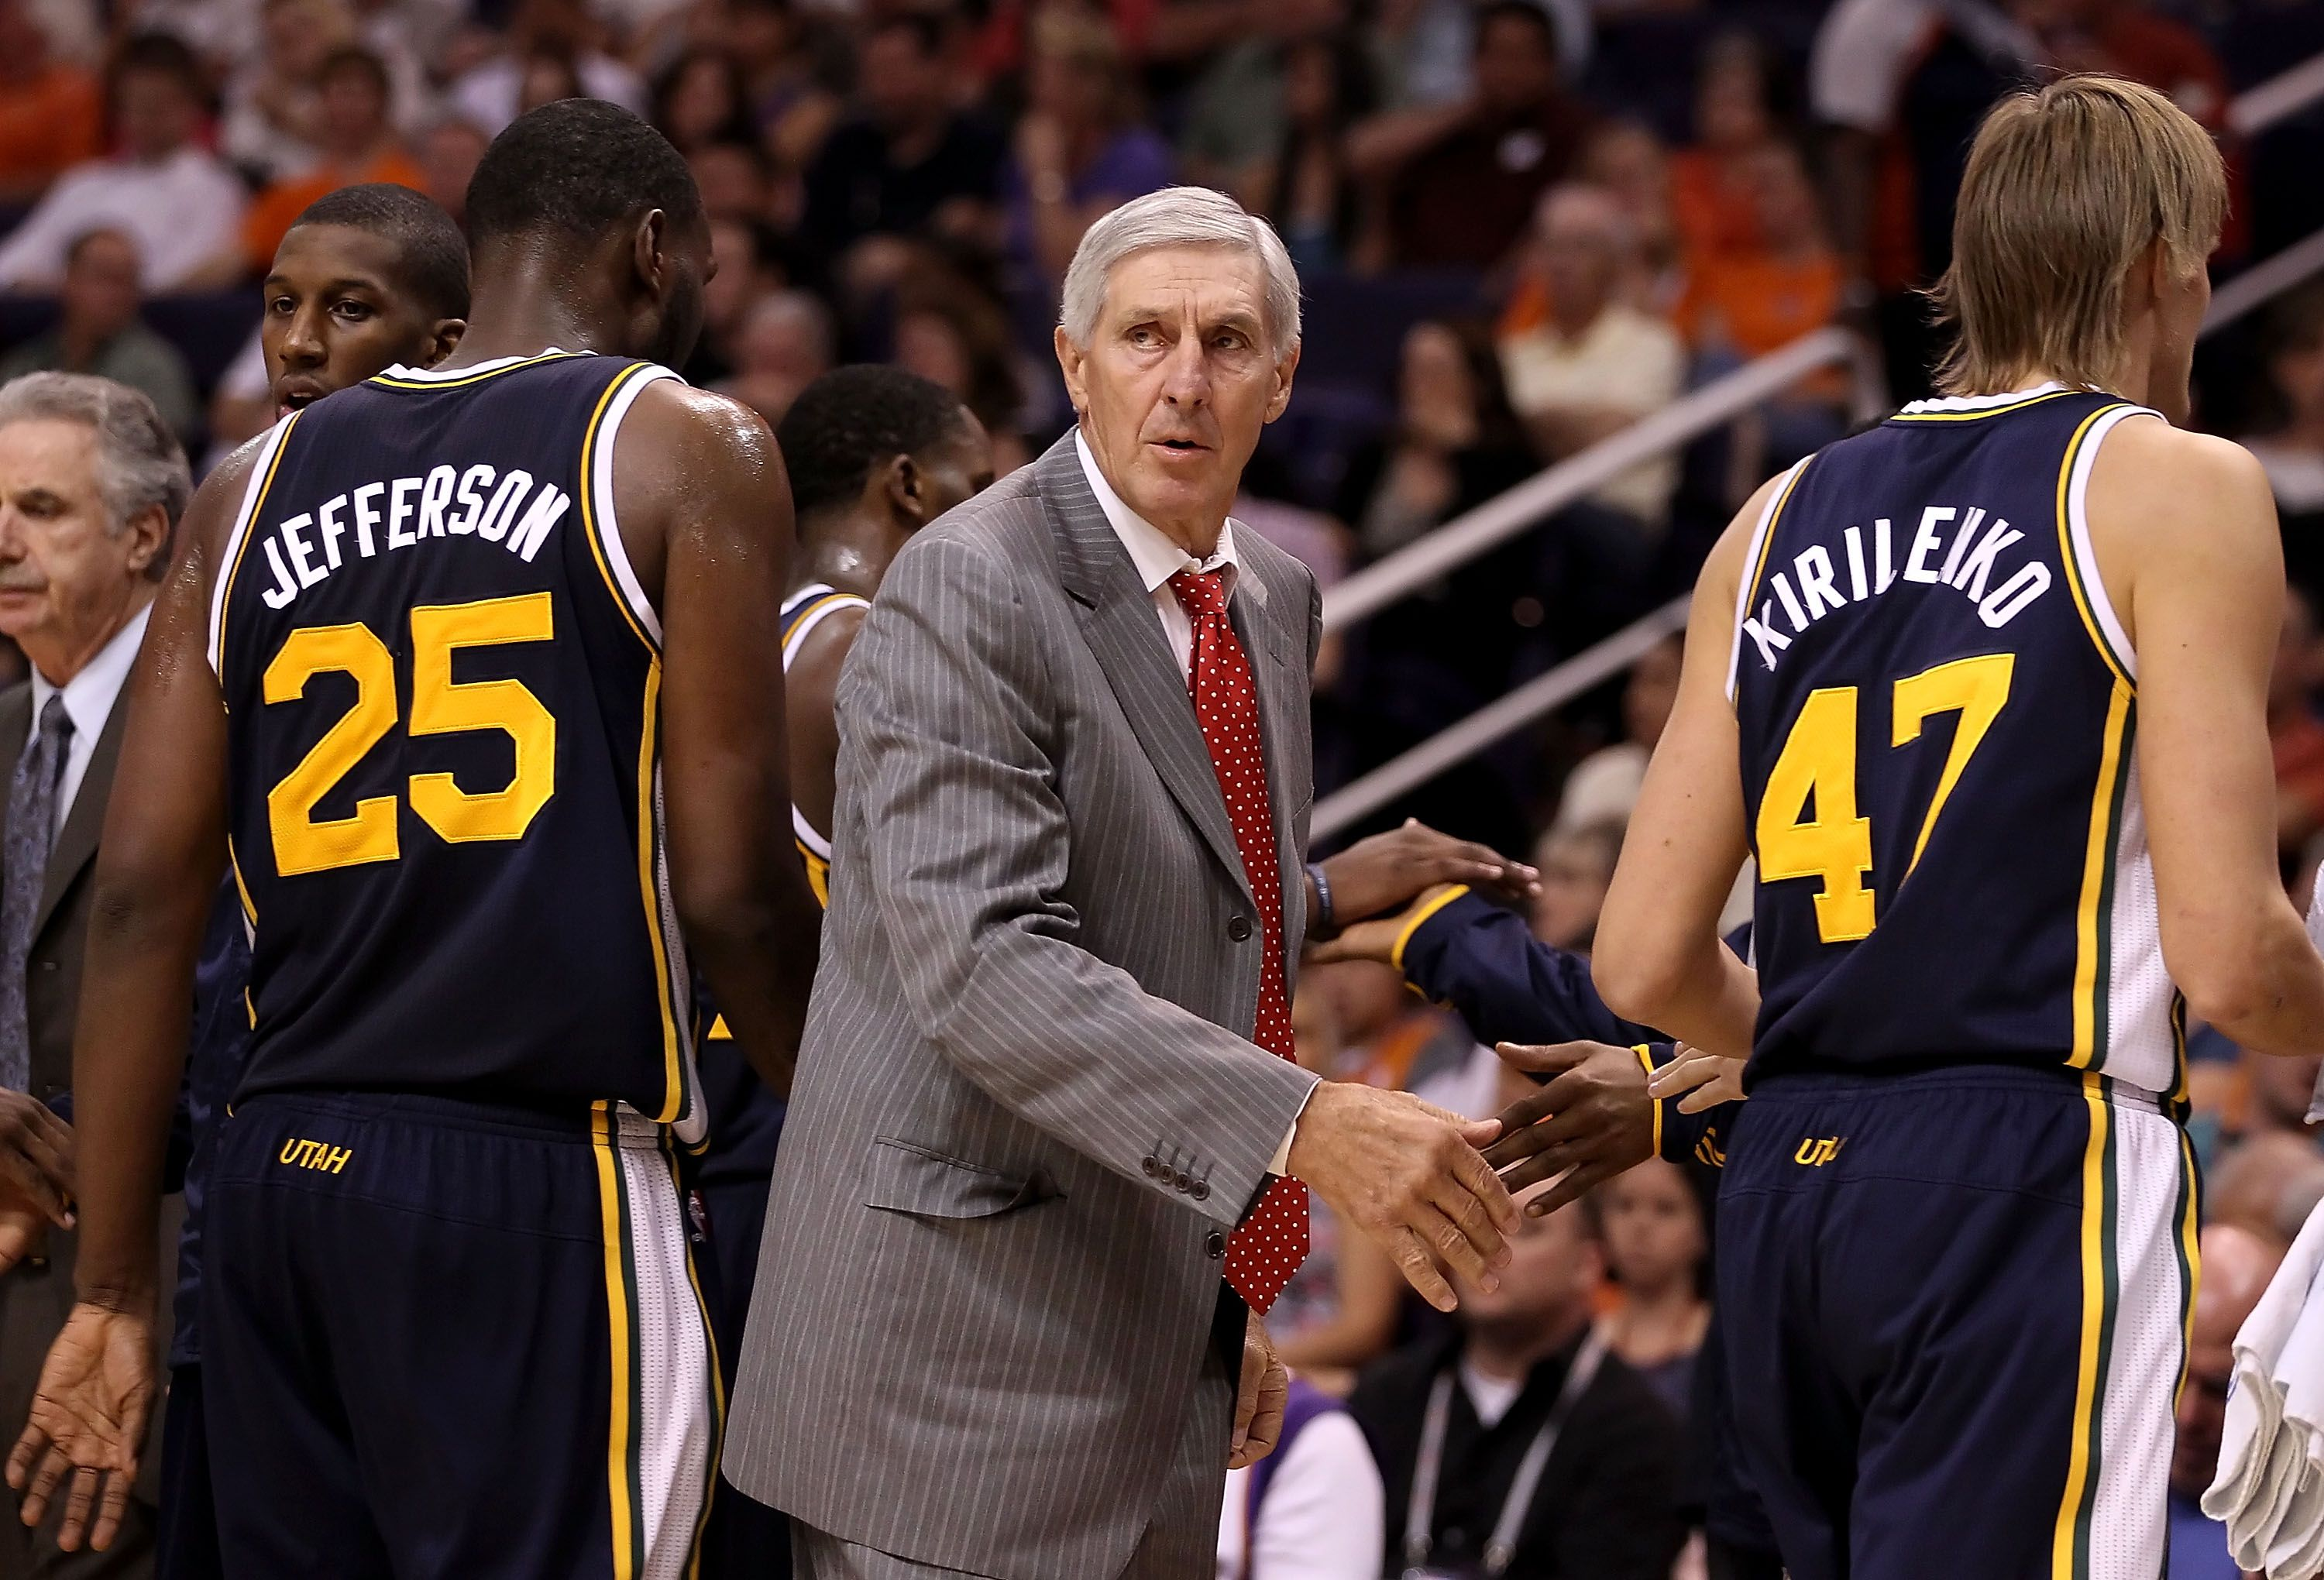 Jerry Sloan coaching the Utah Jazz